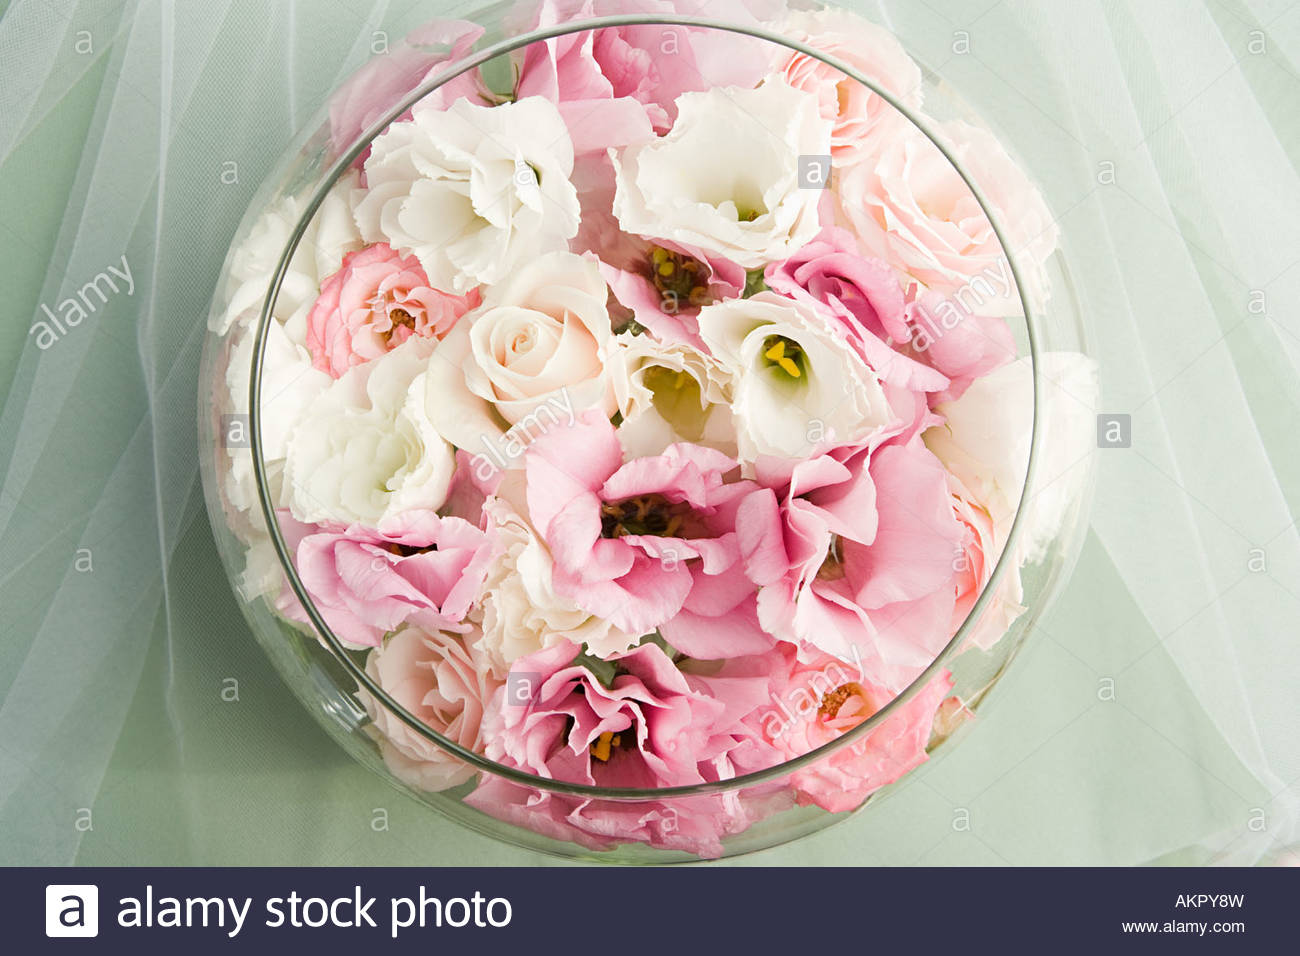 Roses in a round bowl - Stock Image